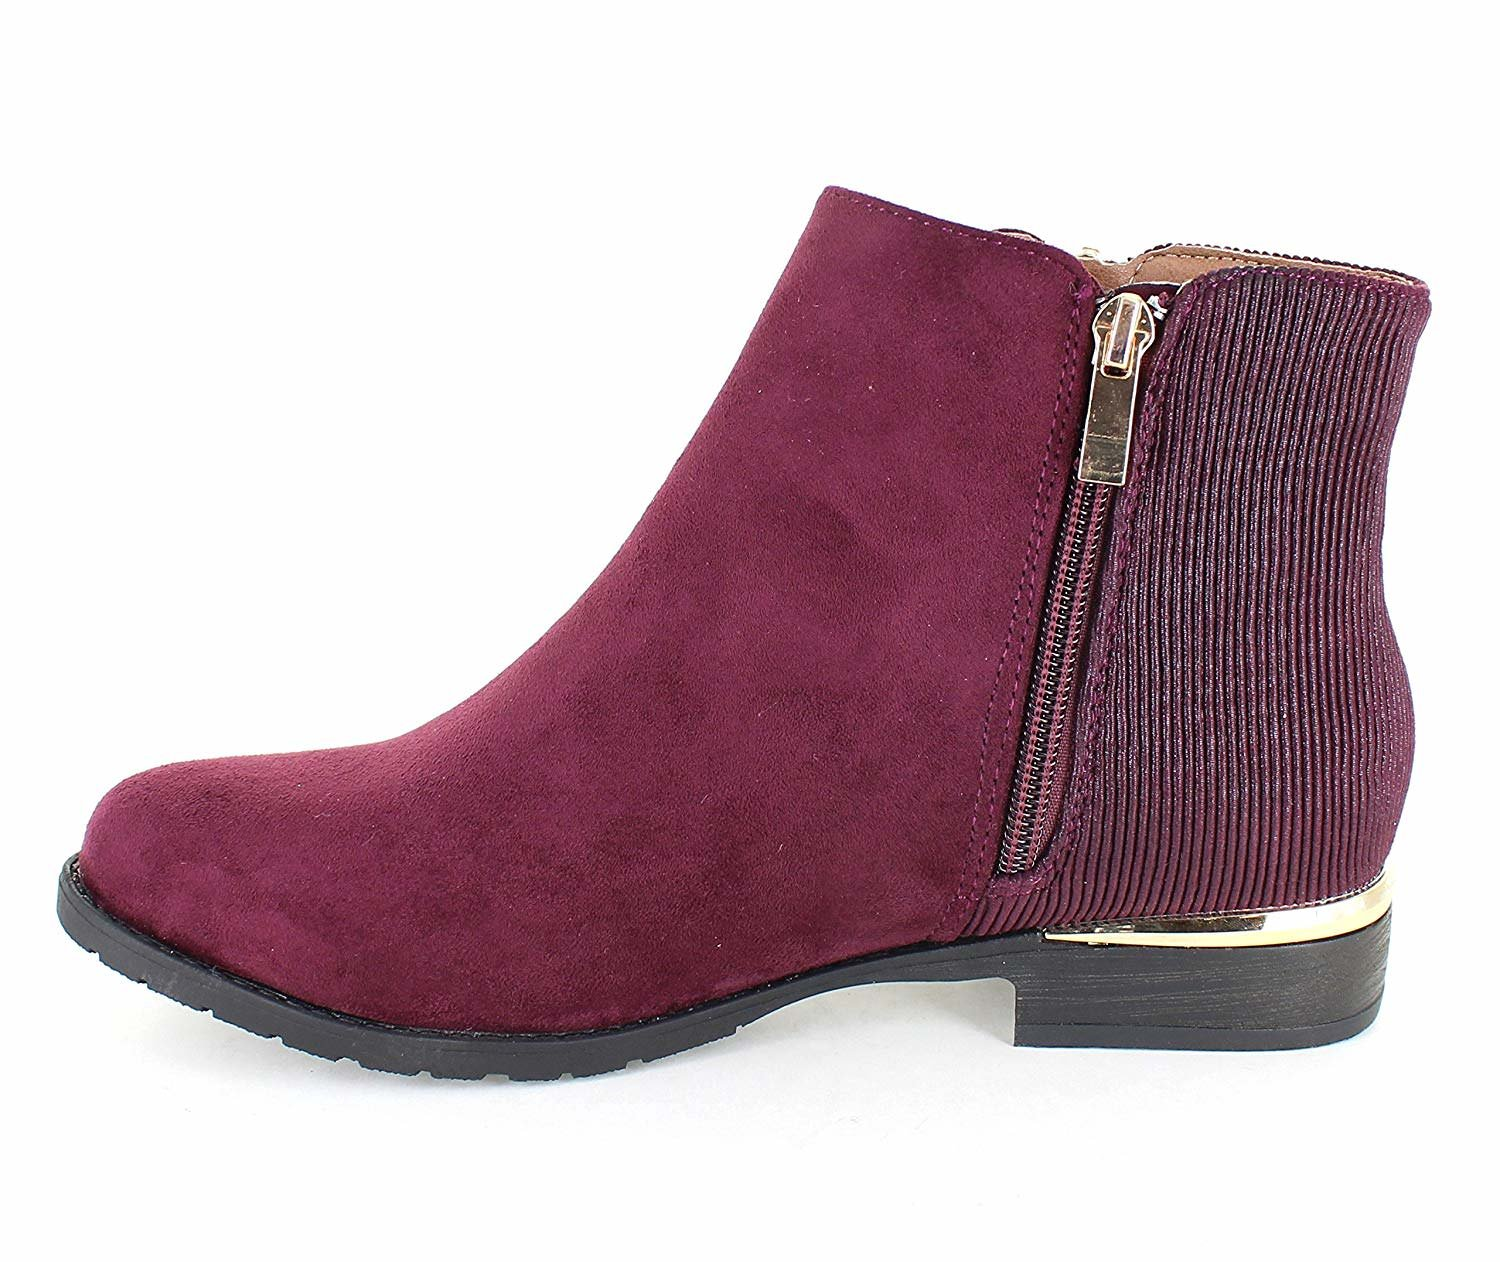 only Gold U Casual Faux Suede Gold only Trim Ankle Boots B07F9HFVHK 7.5 B(M) US|Wine b27b4a